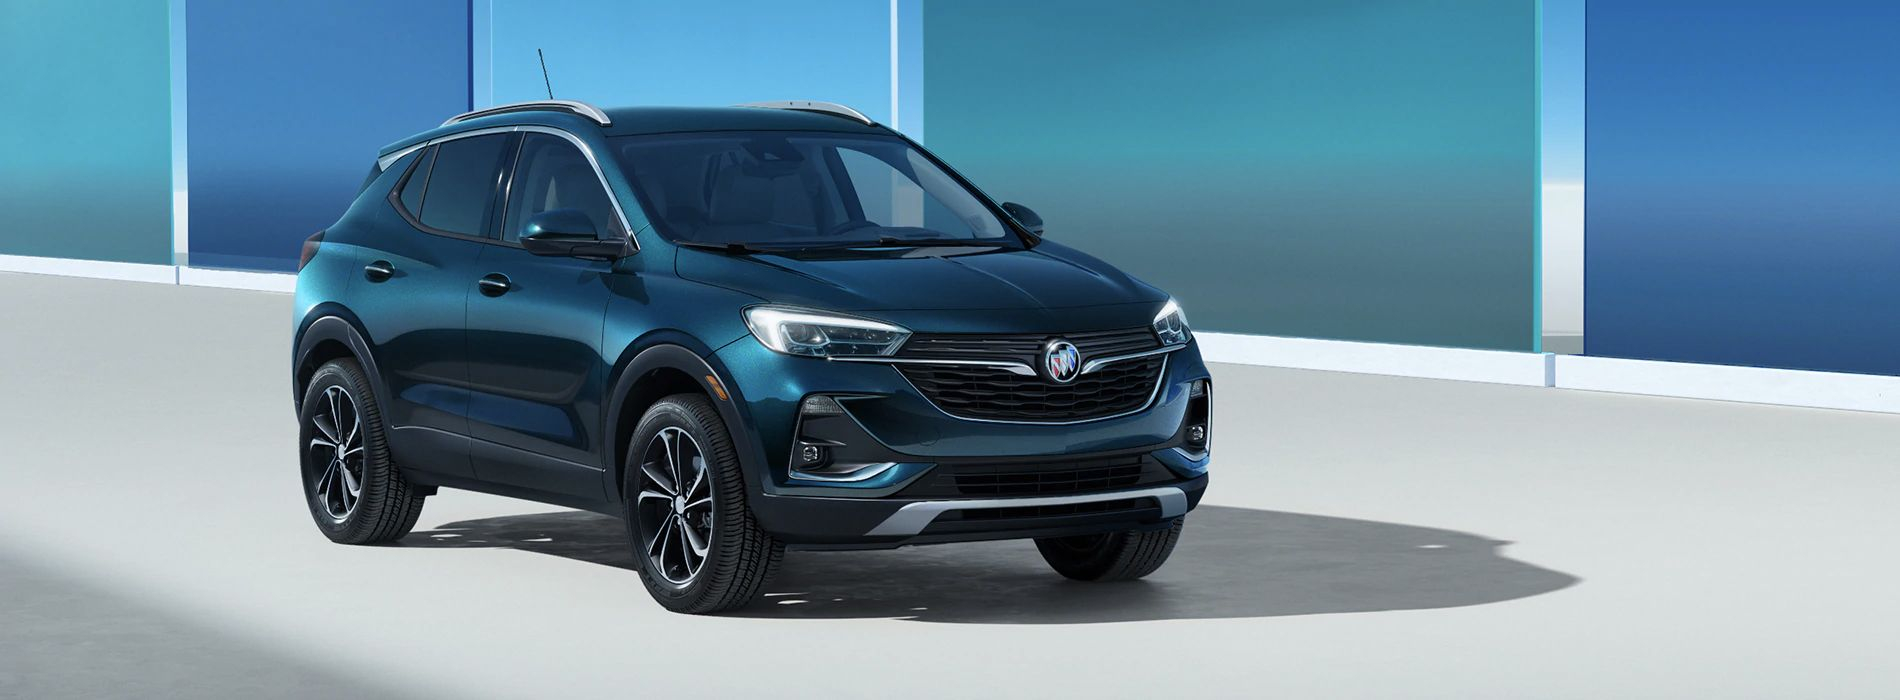 2020 Buick Encore Gx Priced Starting At $25,000 2022 Buick Encore Essence Price, Interior, Dimensions